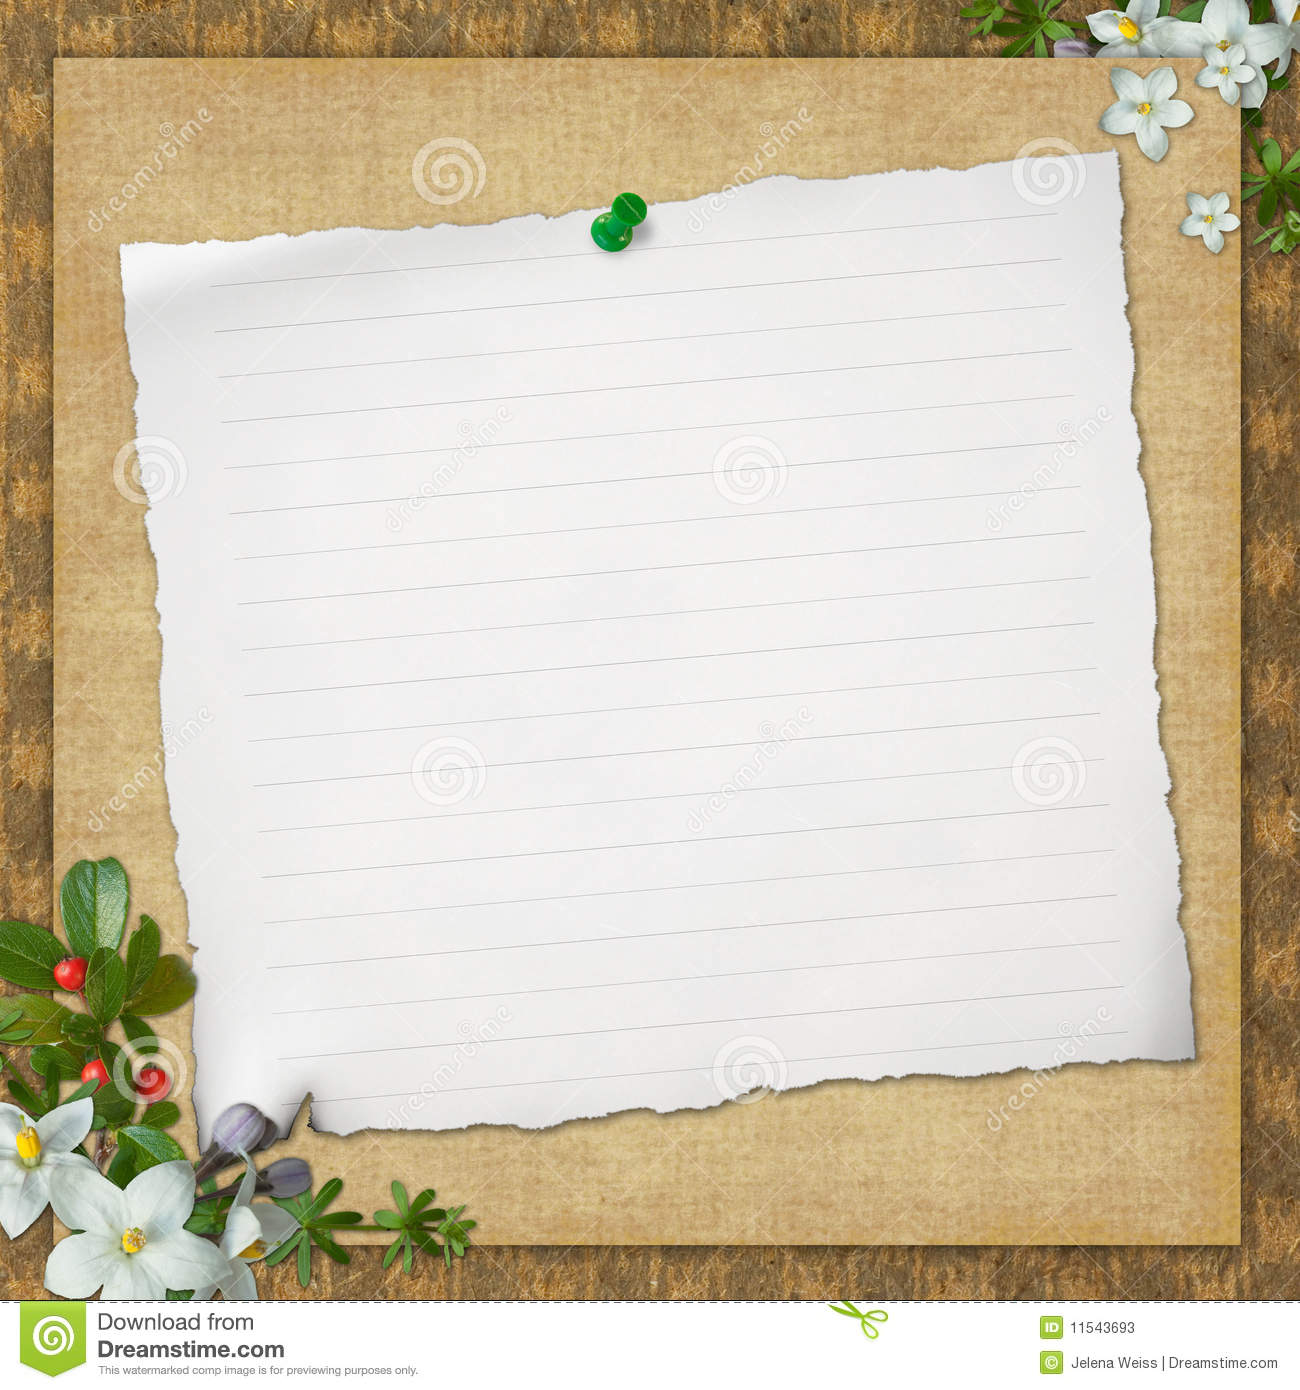 Scrapbook paper note - Blank Note Paper On Textured Background